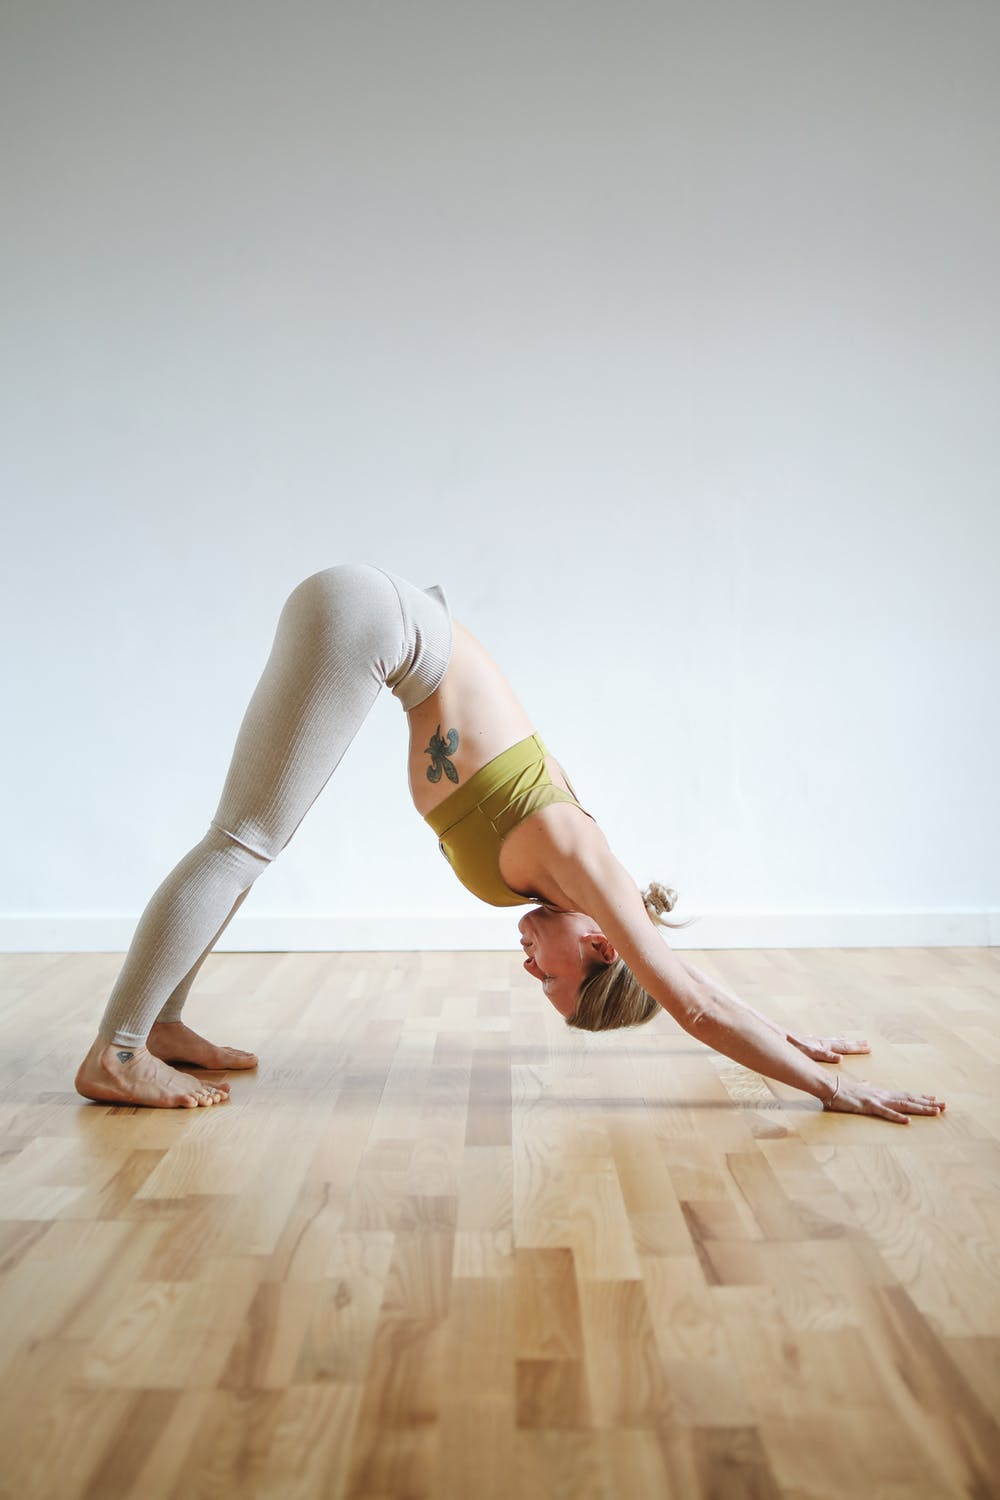 Yoga: 5 Benefits That Everyone Should Know